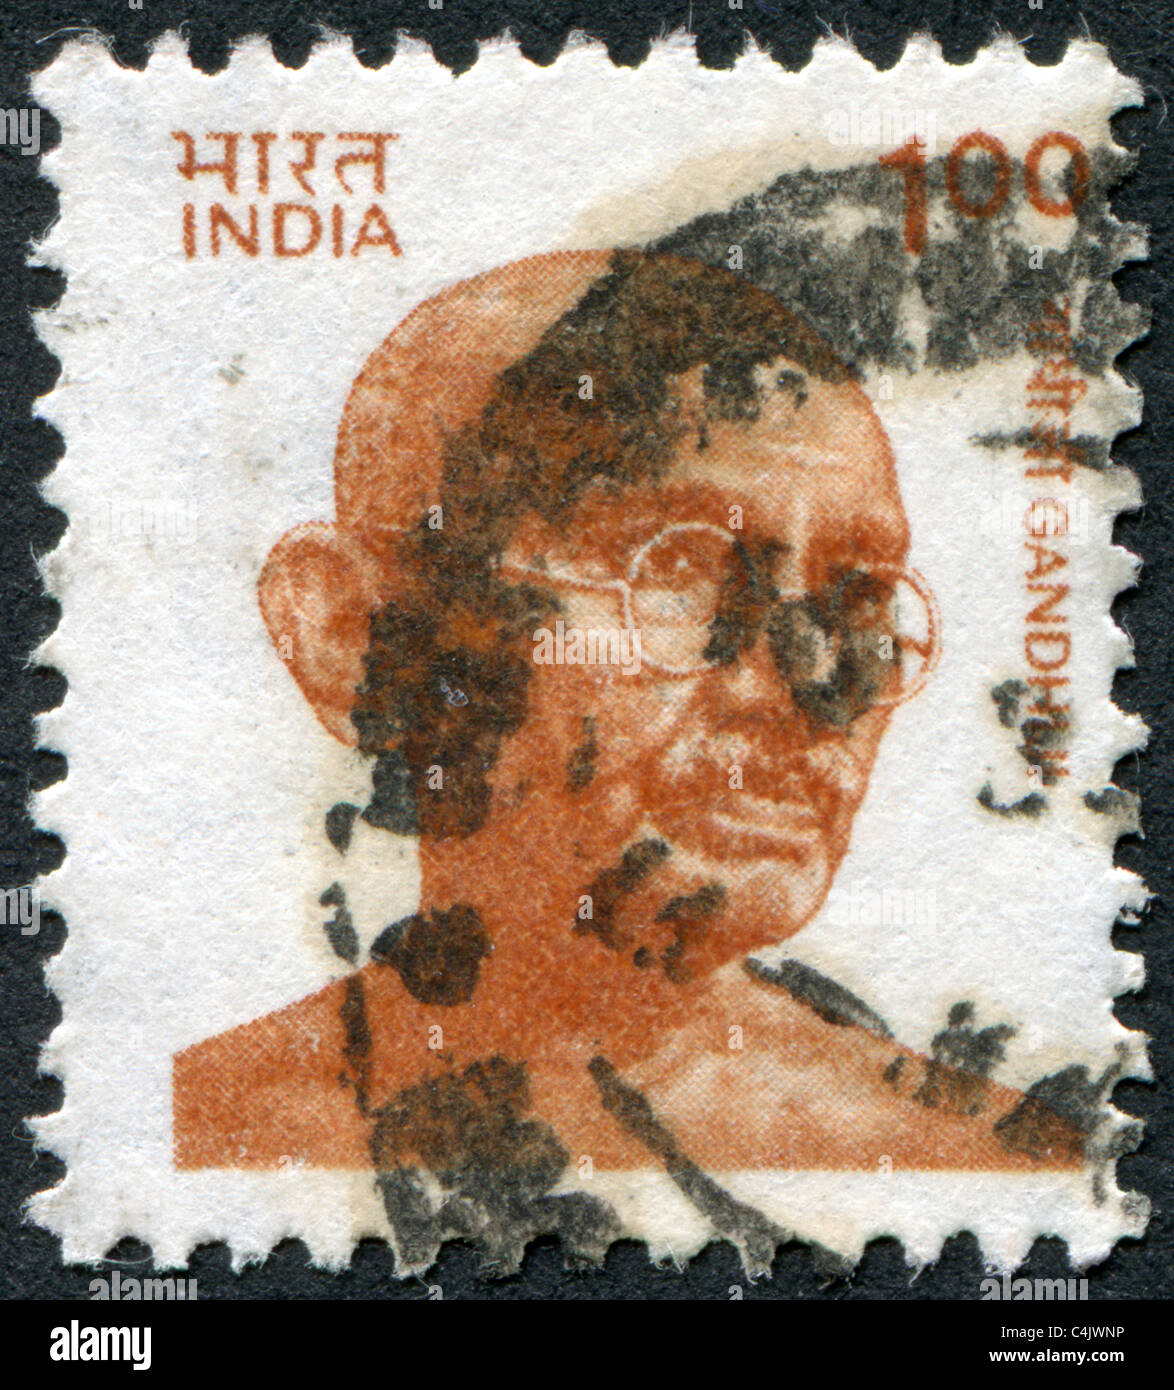 INDIA 1991: A stamp printed in India, depicted Mohandas Karamchand Gandhi - Stock Image